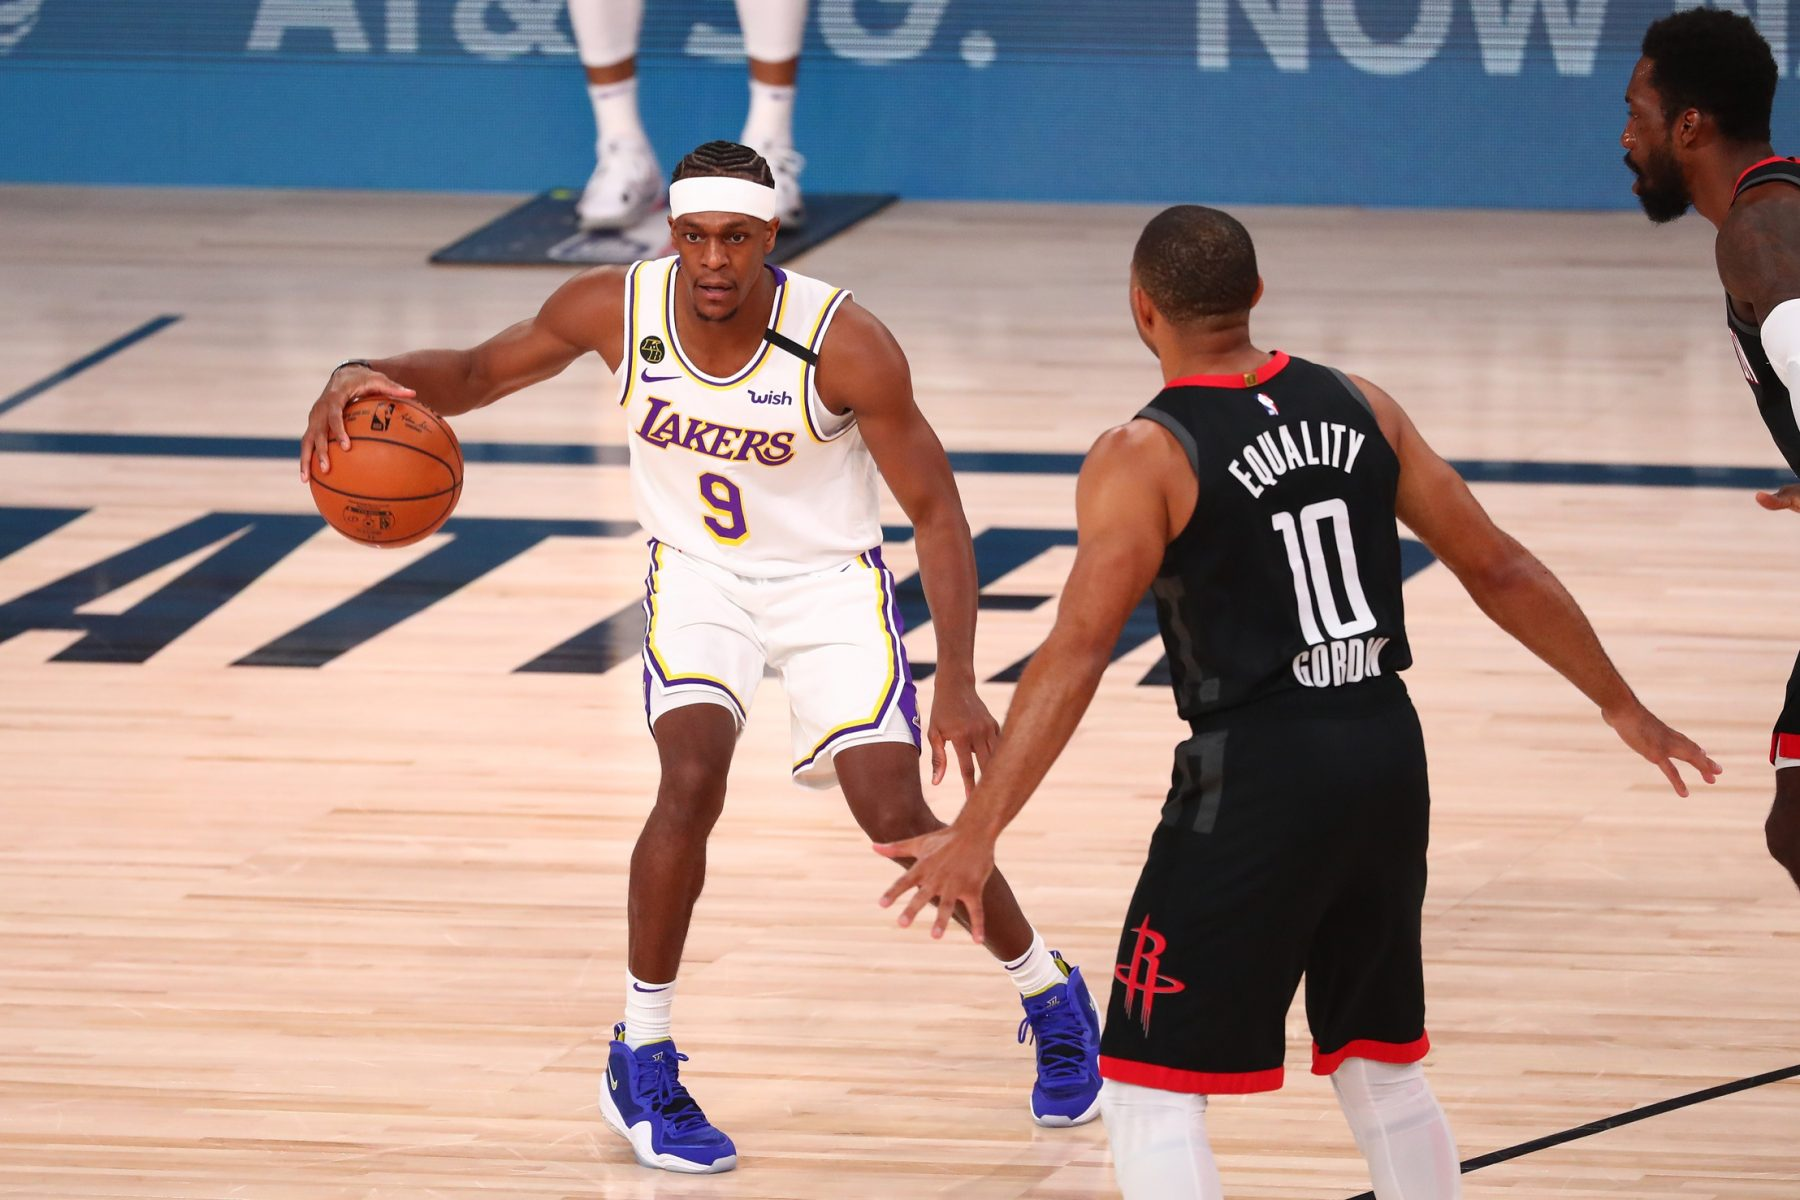 Lakers Provide Worrisome Update on Rajon Rondo Ahead of Game 1 vs. Nuggets